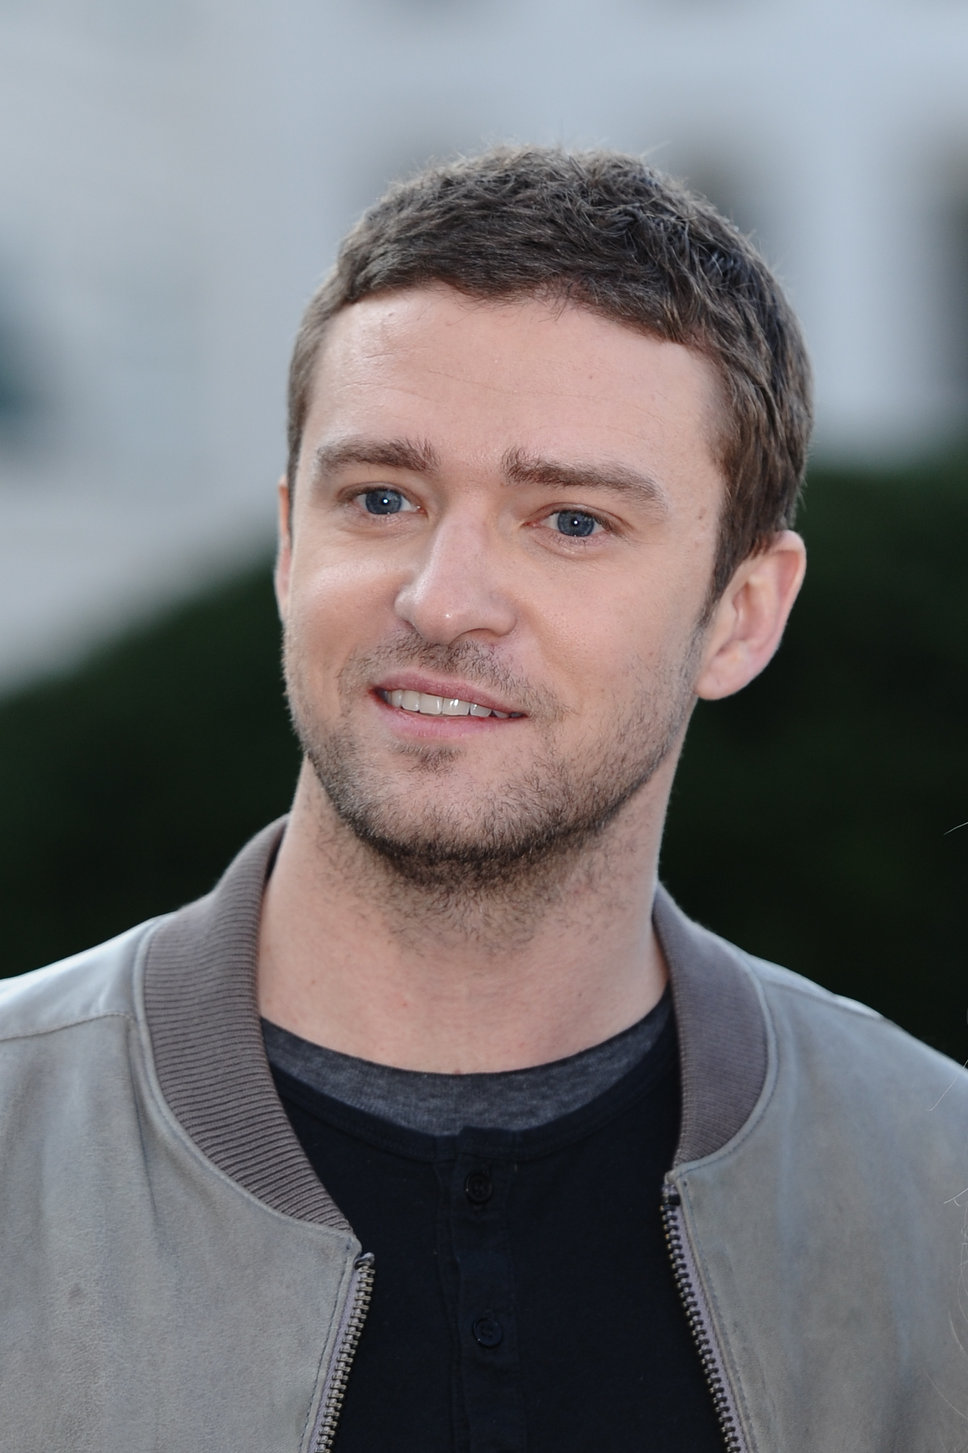 Justin timberlake who is he dating now 4